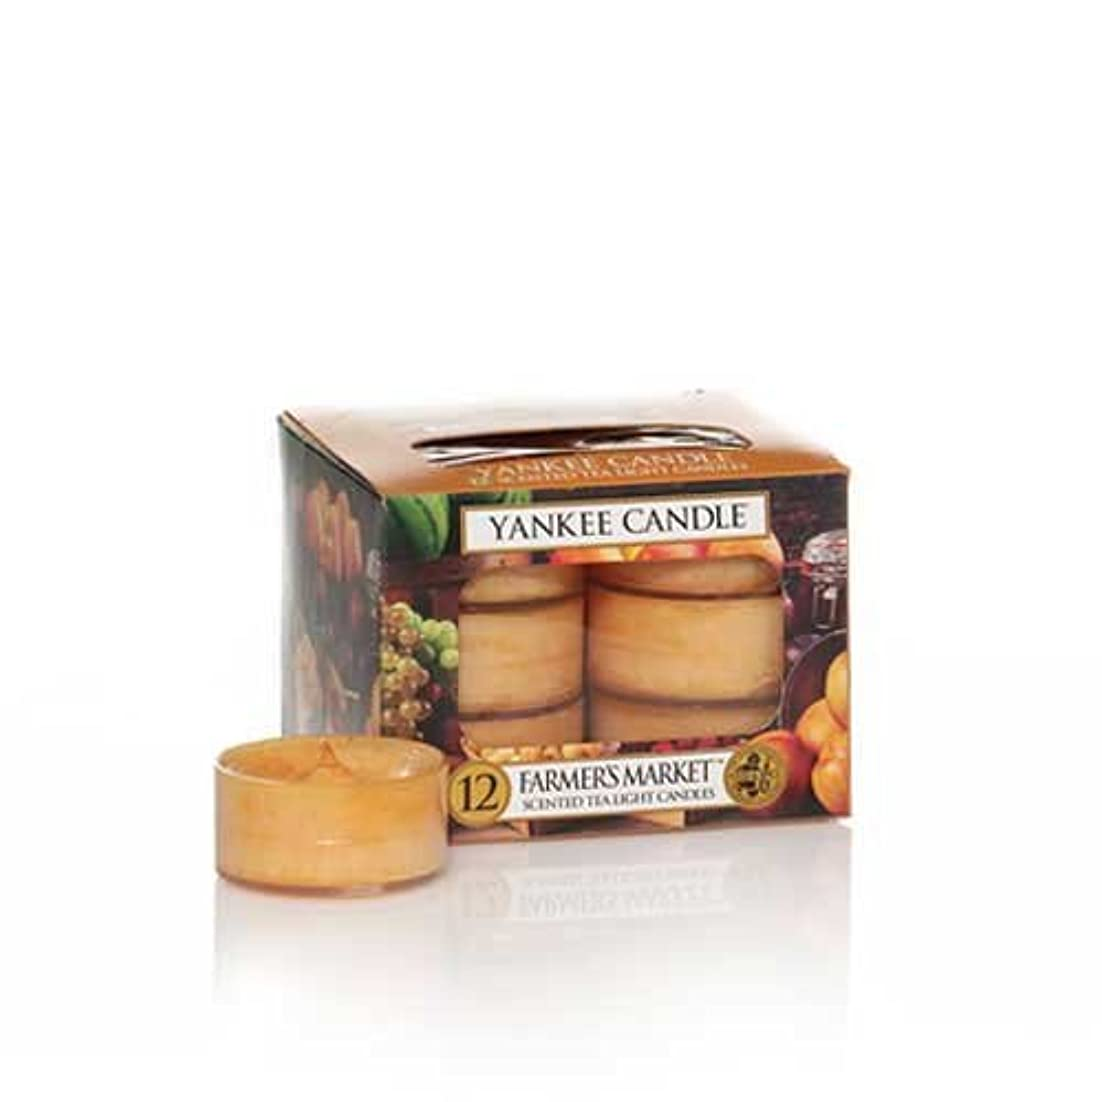 褐色ボンド情緒的Yankee Candle Farmer 's Market, Food & Spice香り Tea Light Candles オレンジ 1163587-YC